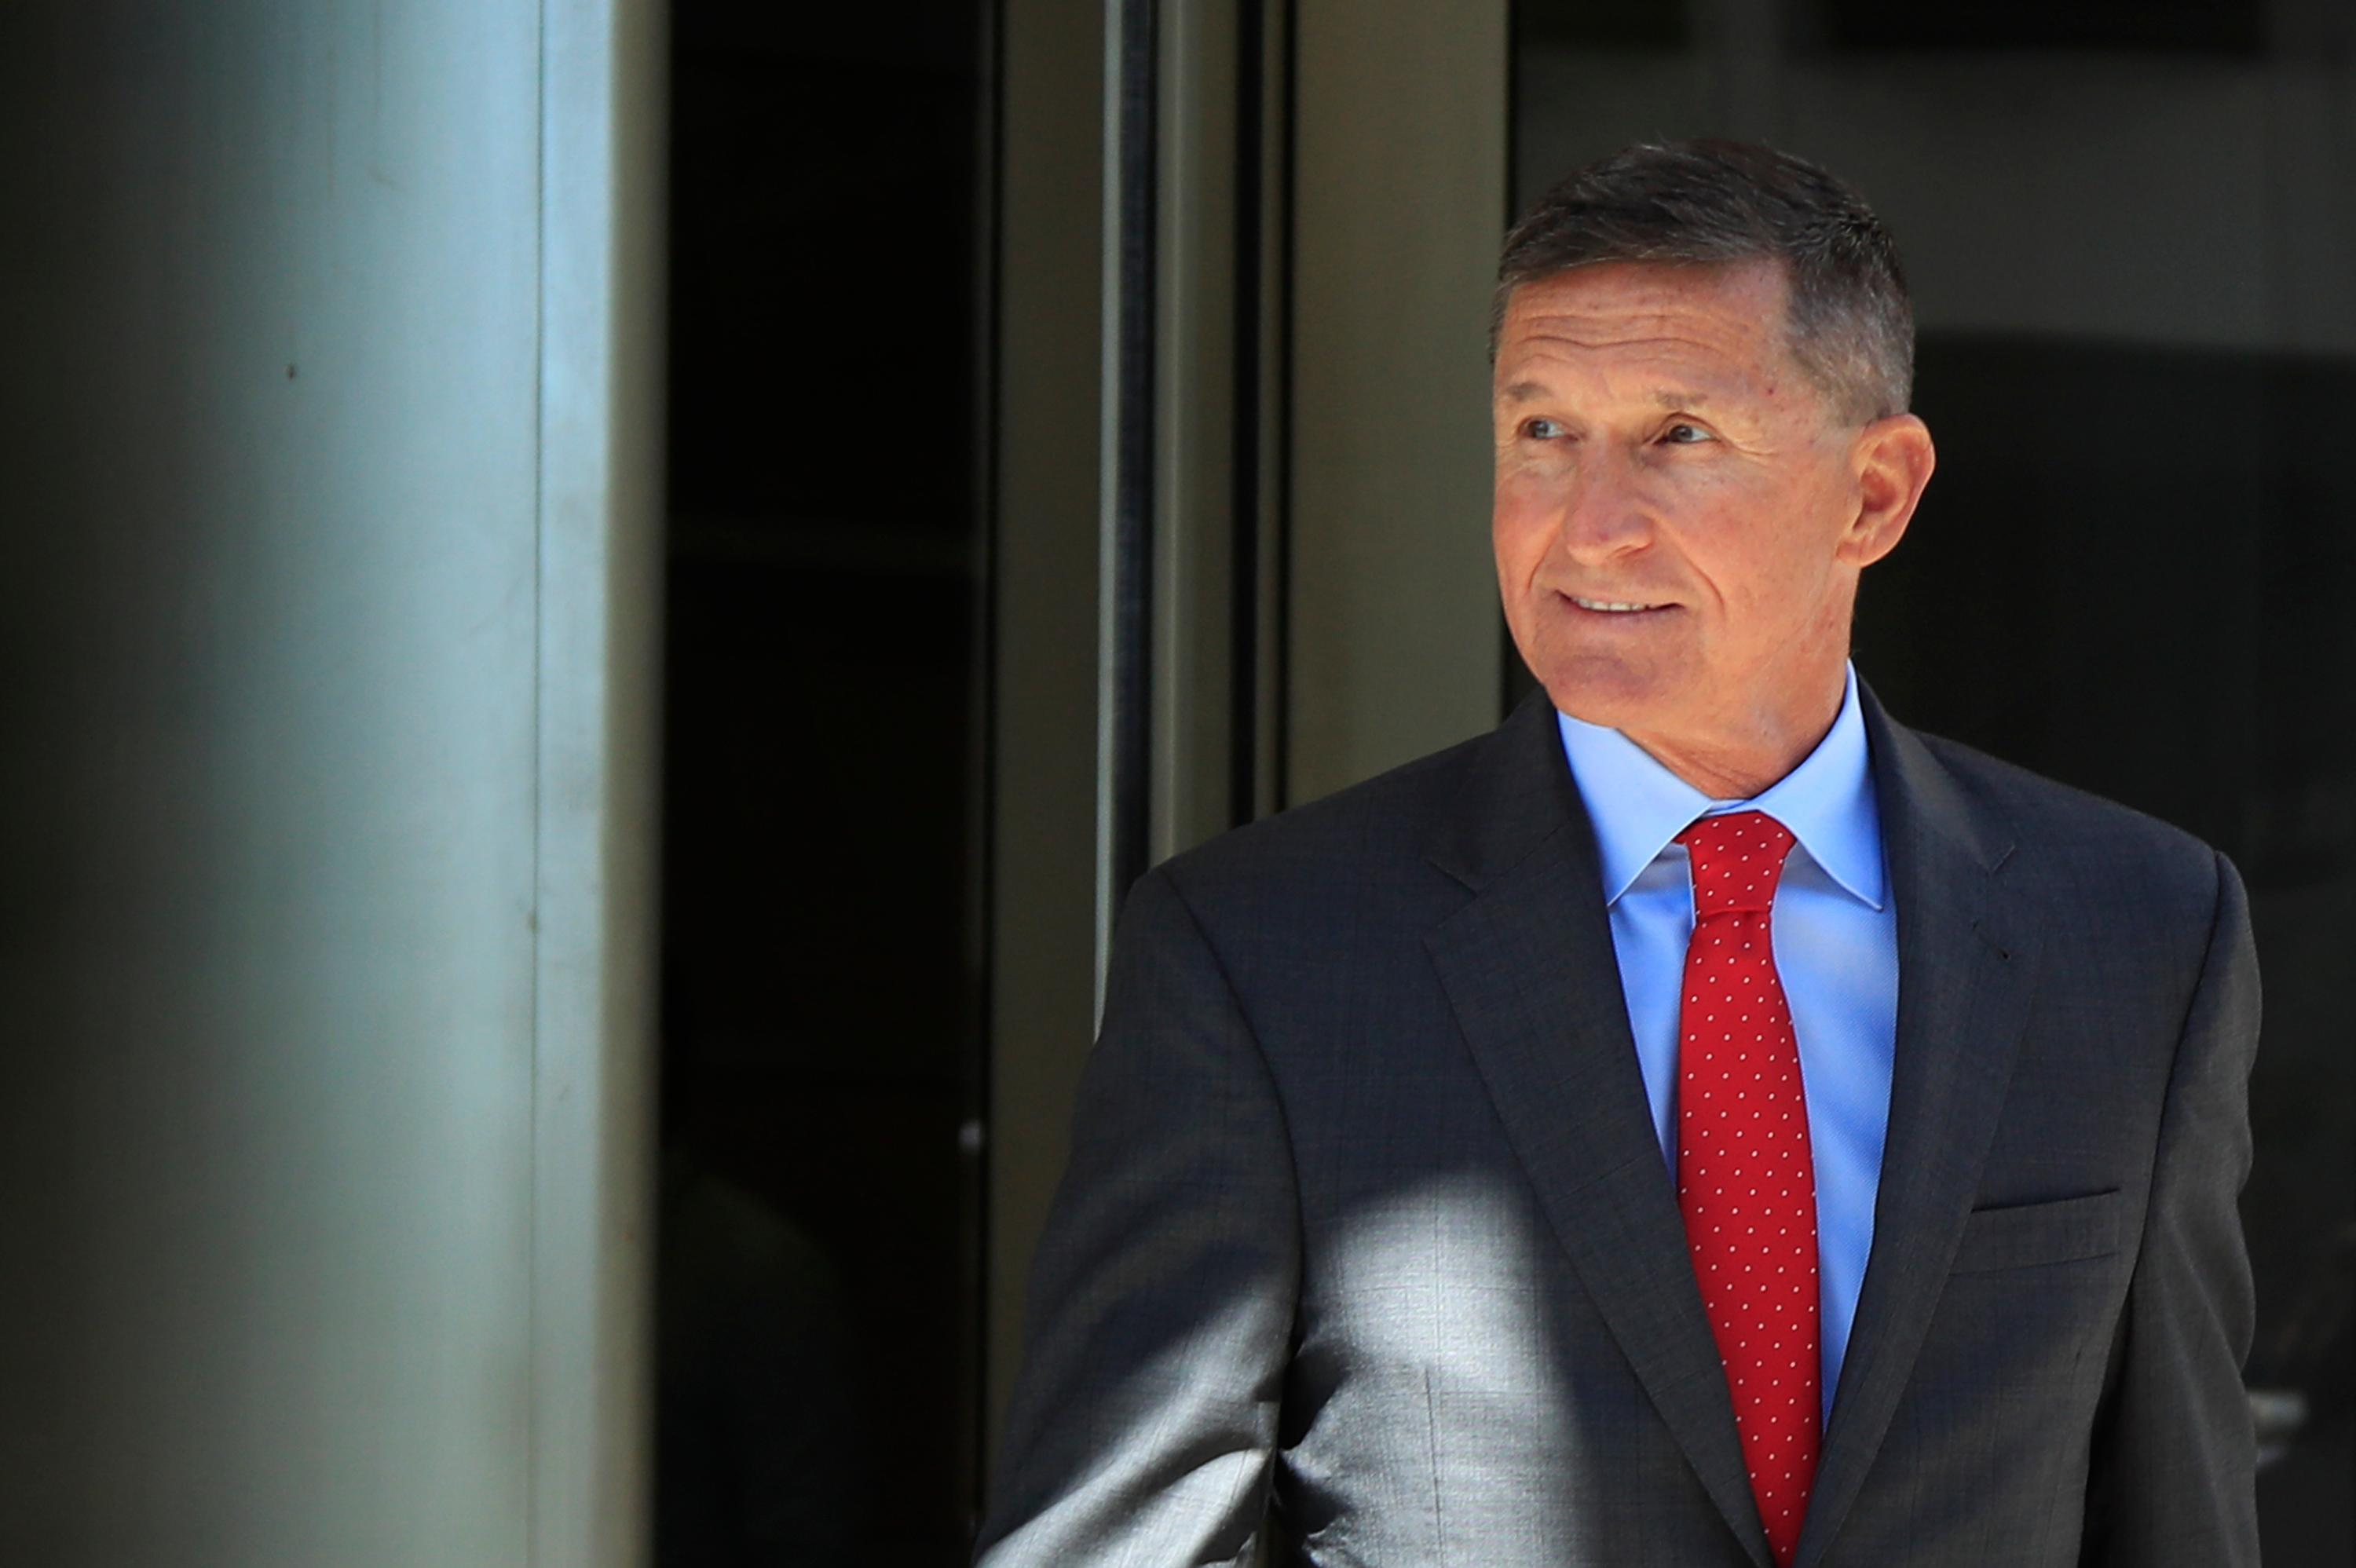 FILE - In this July 10, 2018, file photo, former Trump national security adviser Michael Flynn leaves the federal courthouse in Washington, following a status hearing.{ } (AP Photo/Manuel Balce Ceneta, File)